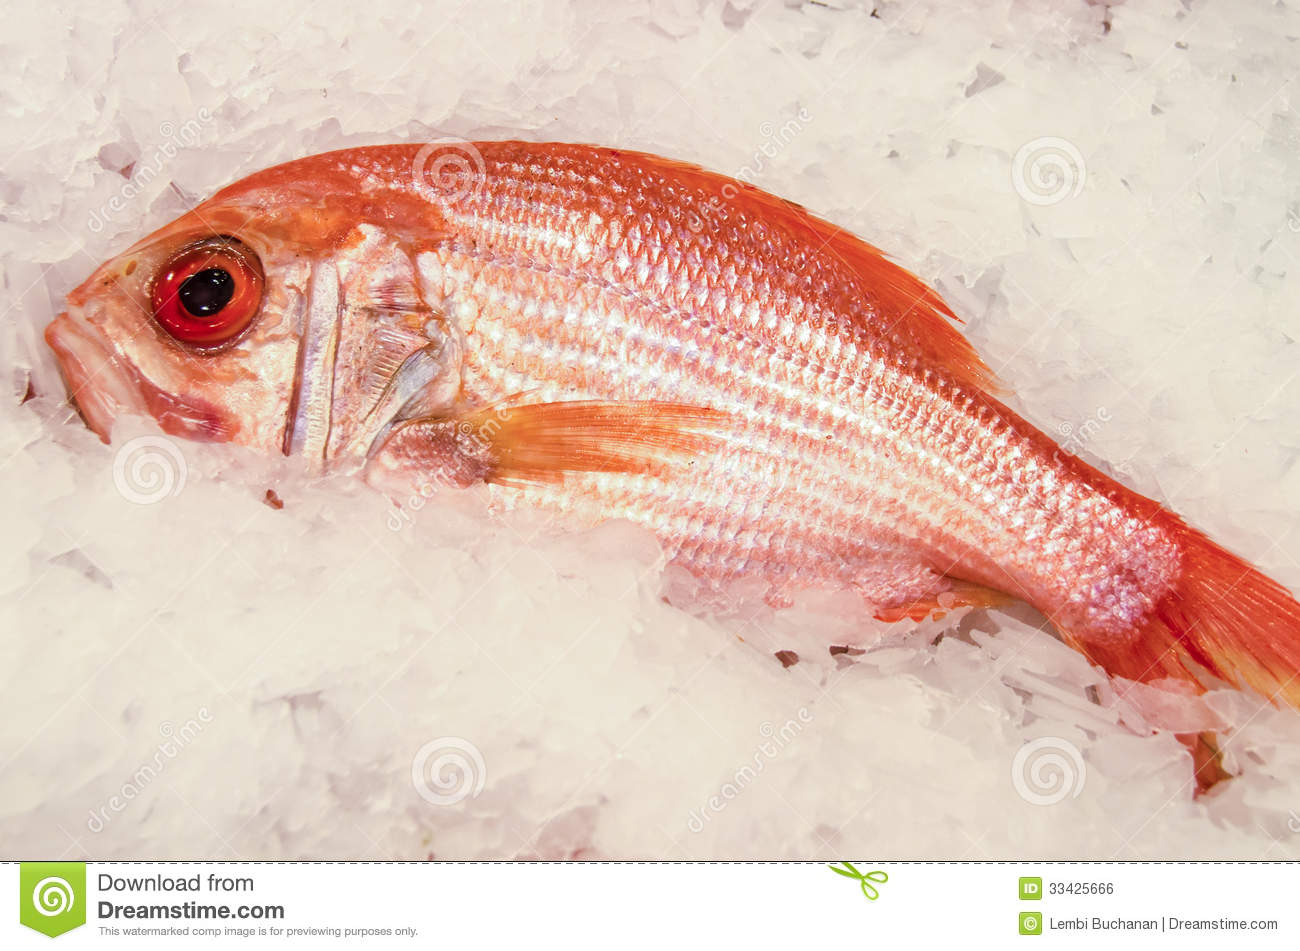 Fresh Red Snapper On Ice Royalty Free Stock Image - Image: 33425666